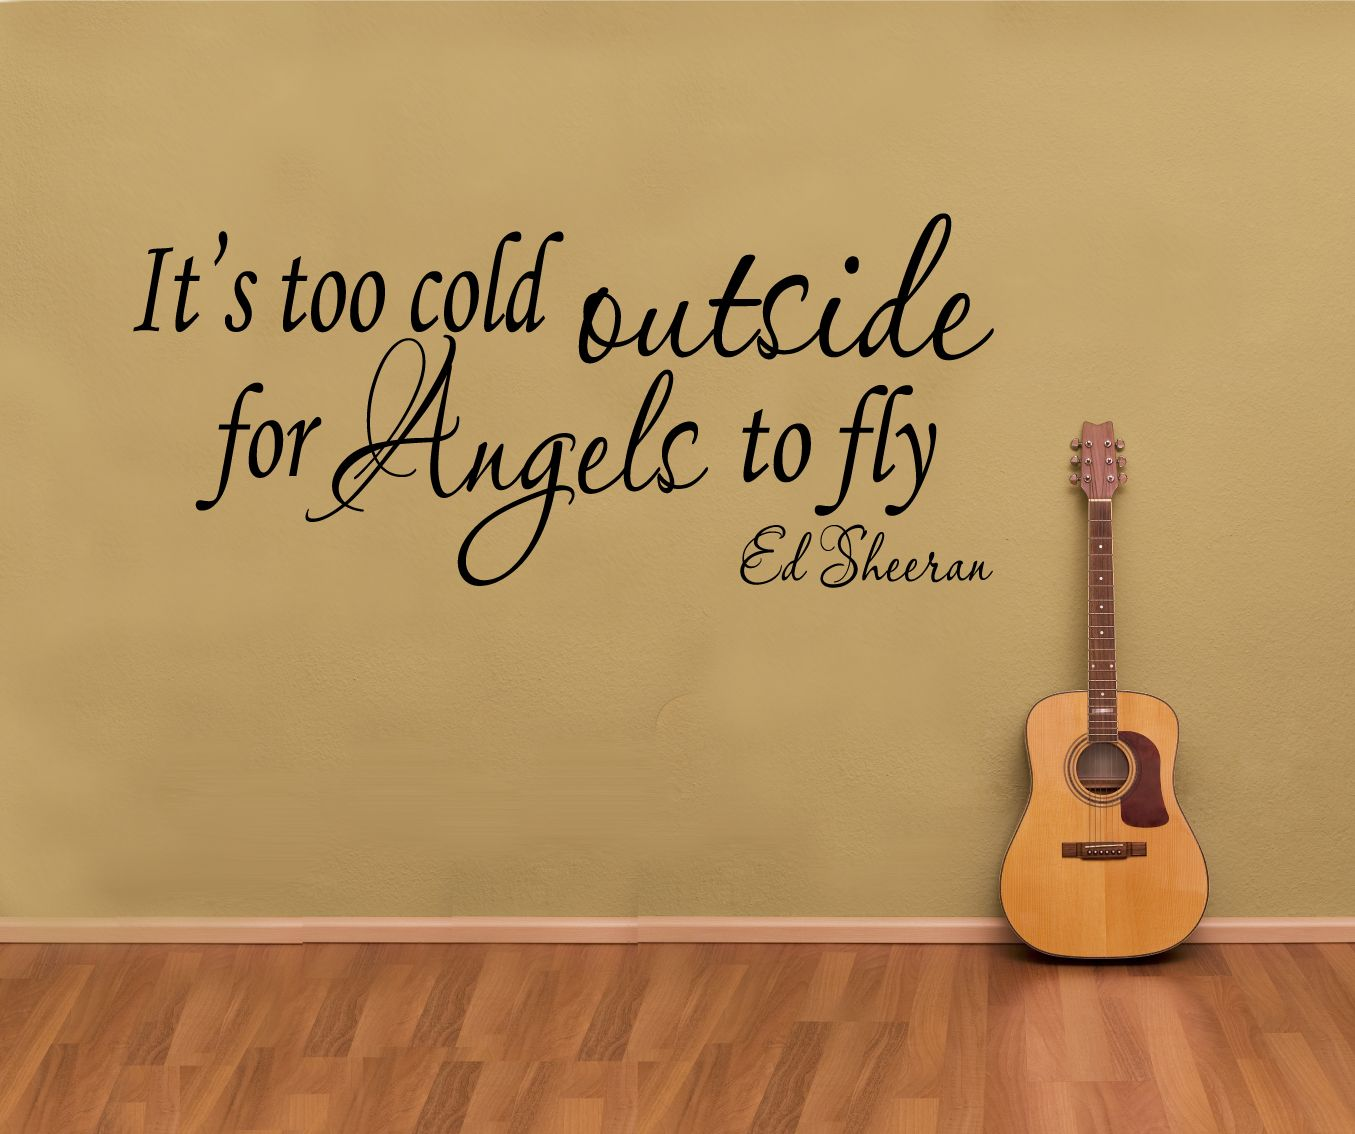 Ed Sheeran Quotes Bing Images On We Heart It